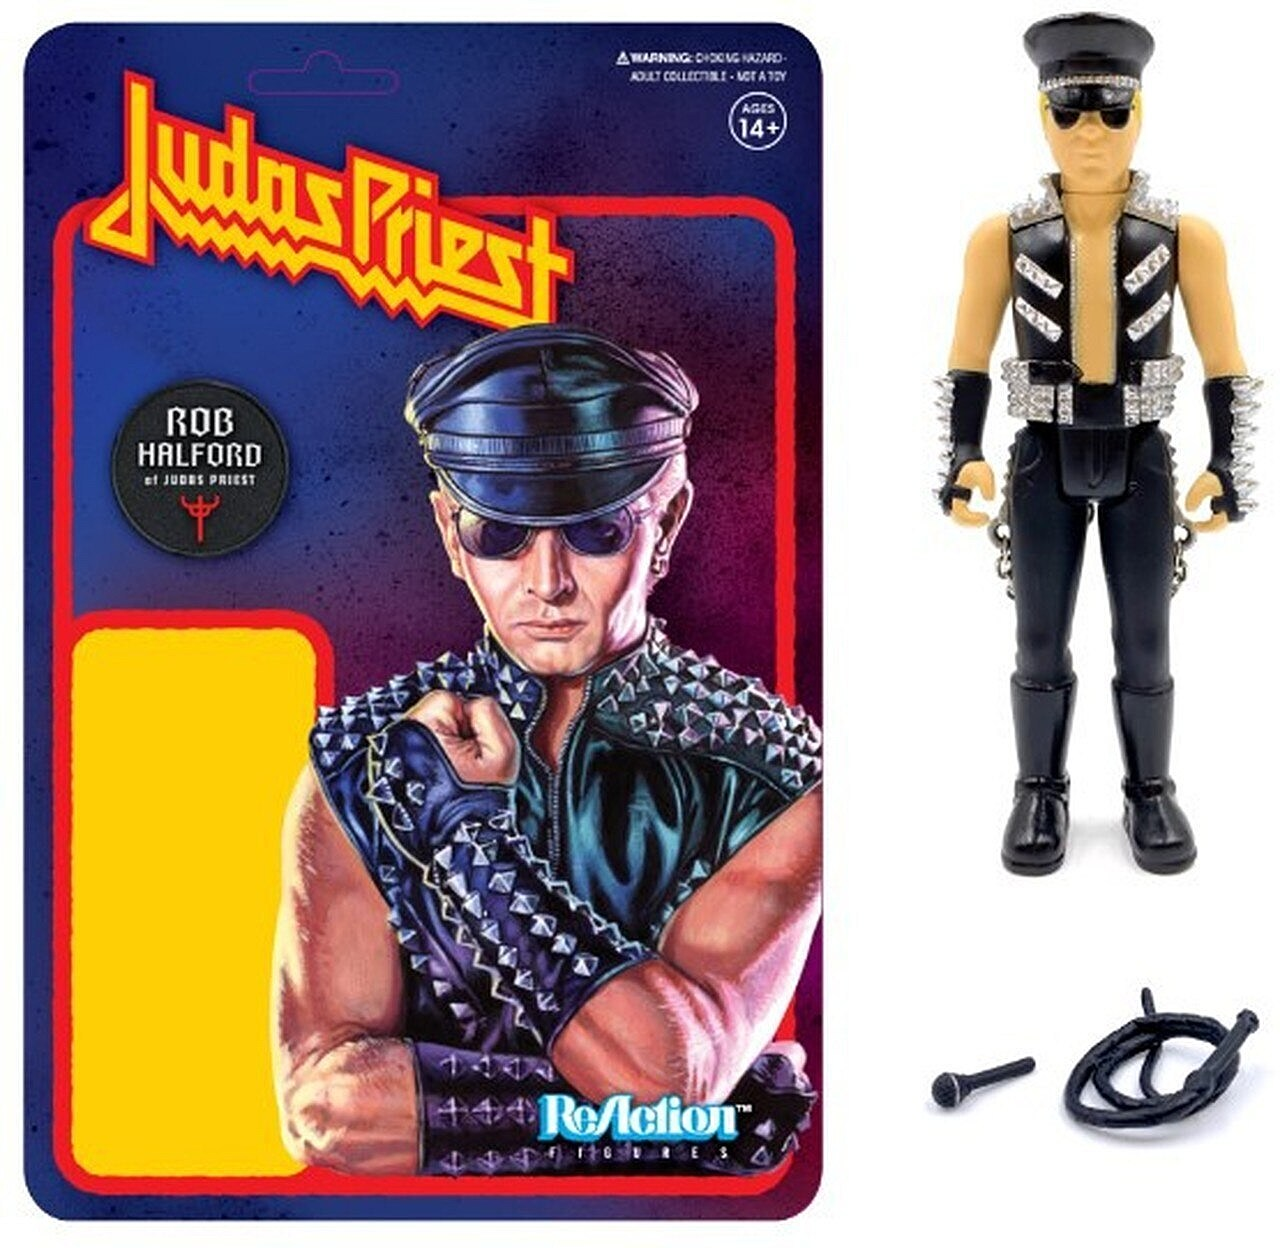 Judas Priest Action Figure